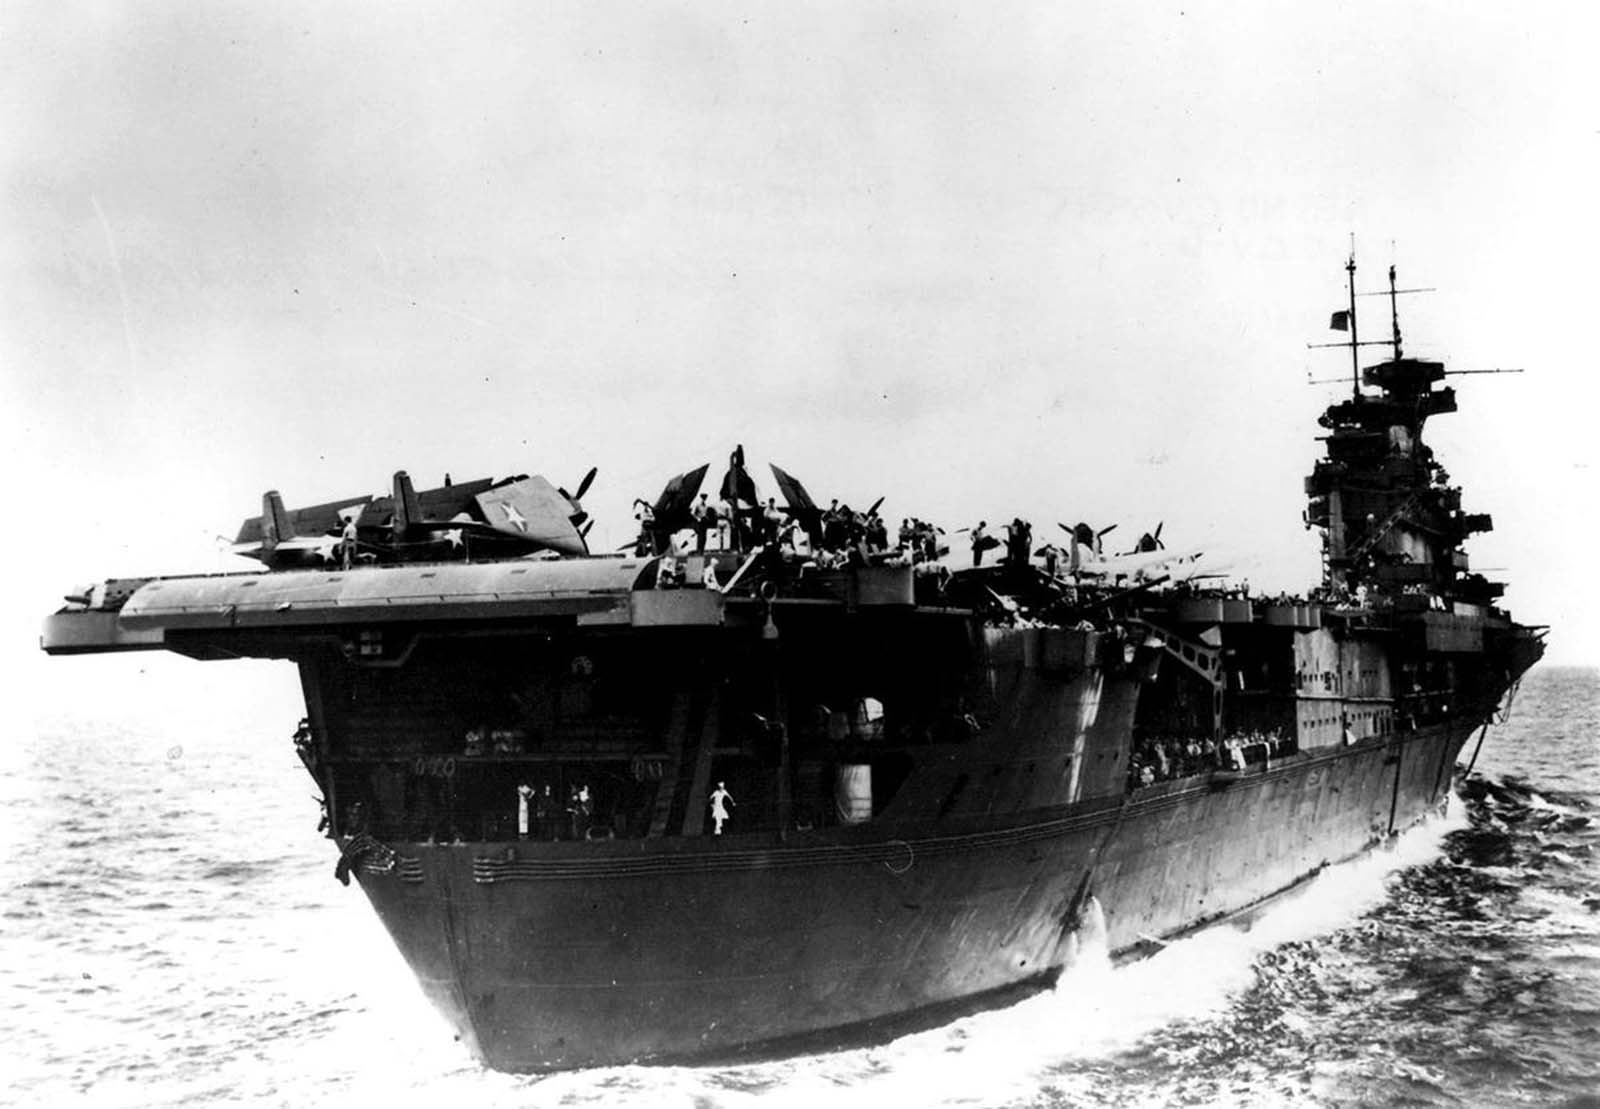 View showing the stern quarter of the aircraft carrier USS Enterprise in the Pacific in 1942.